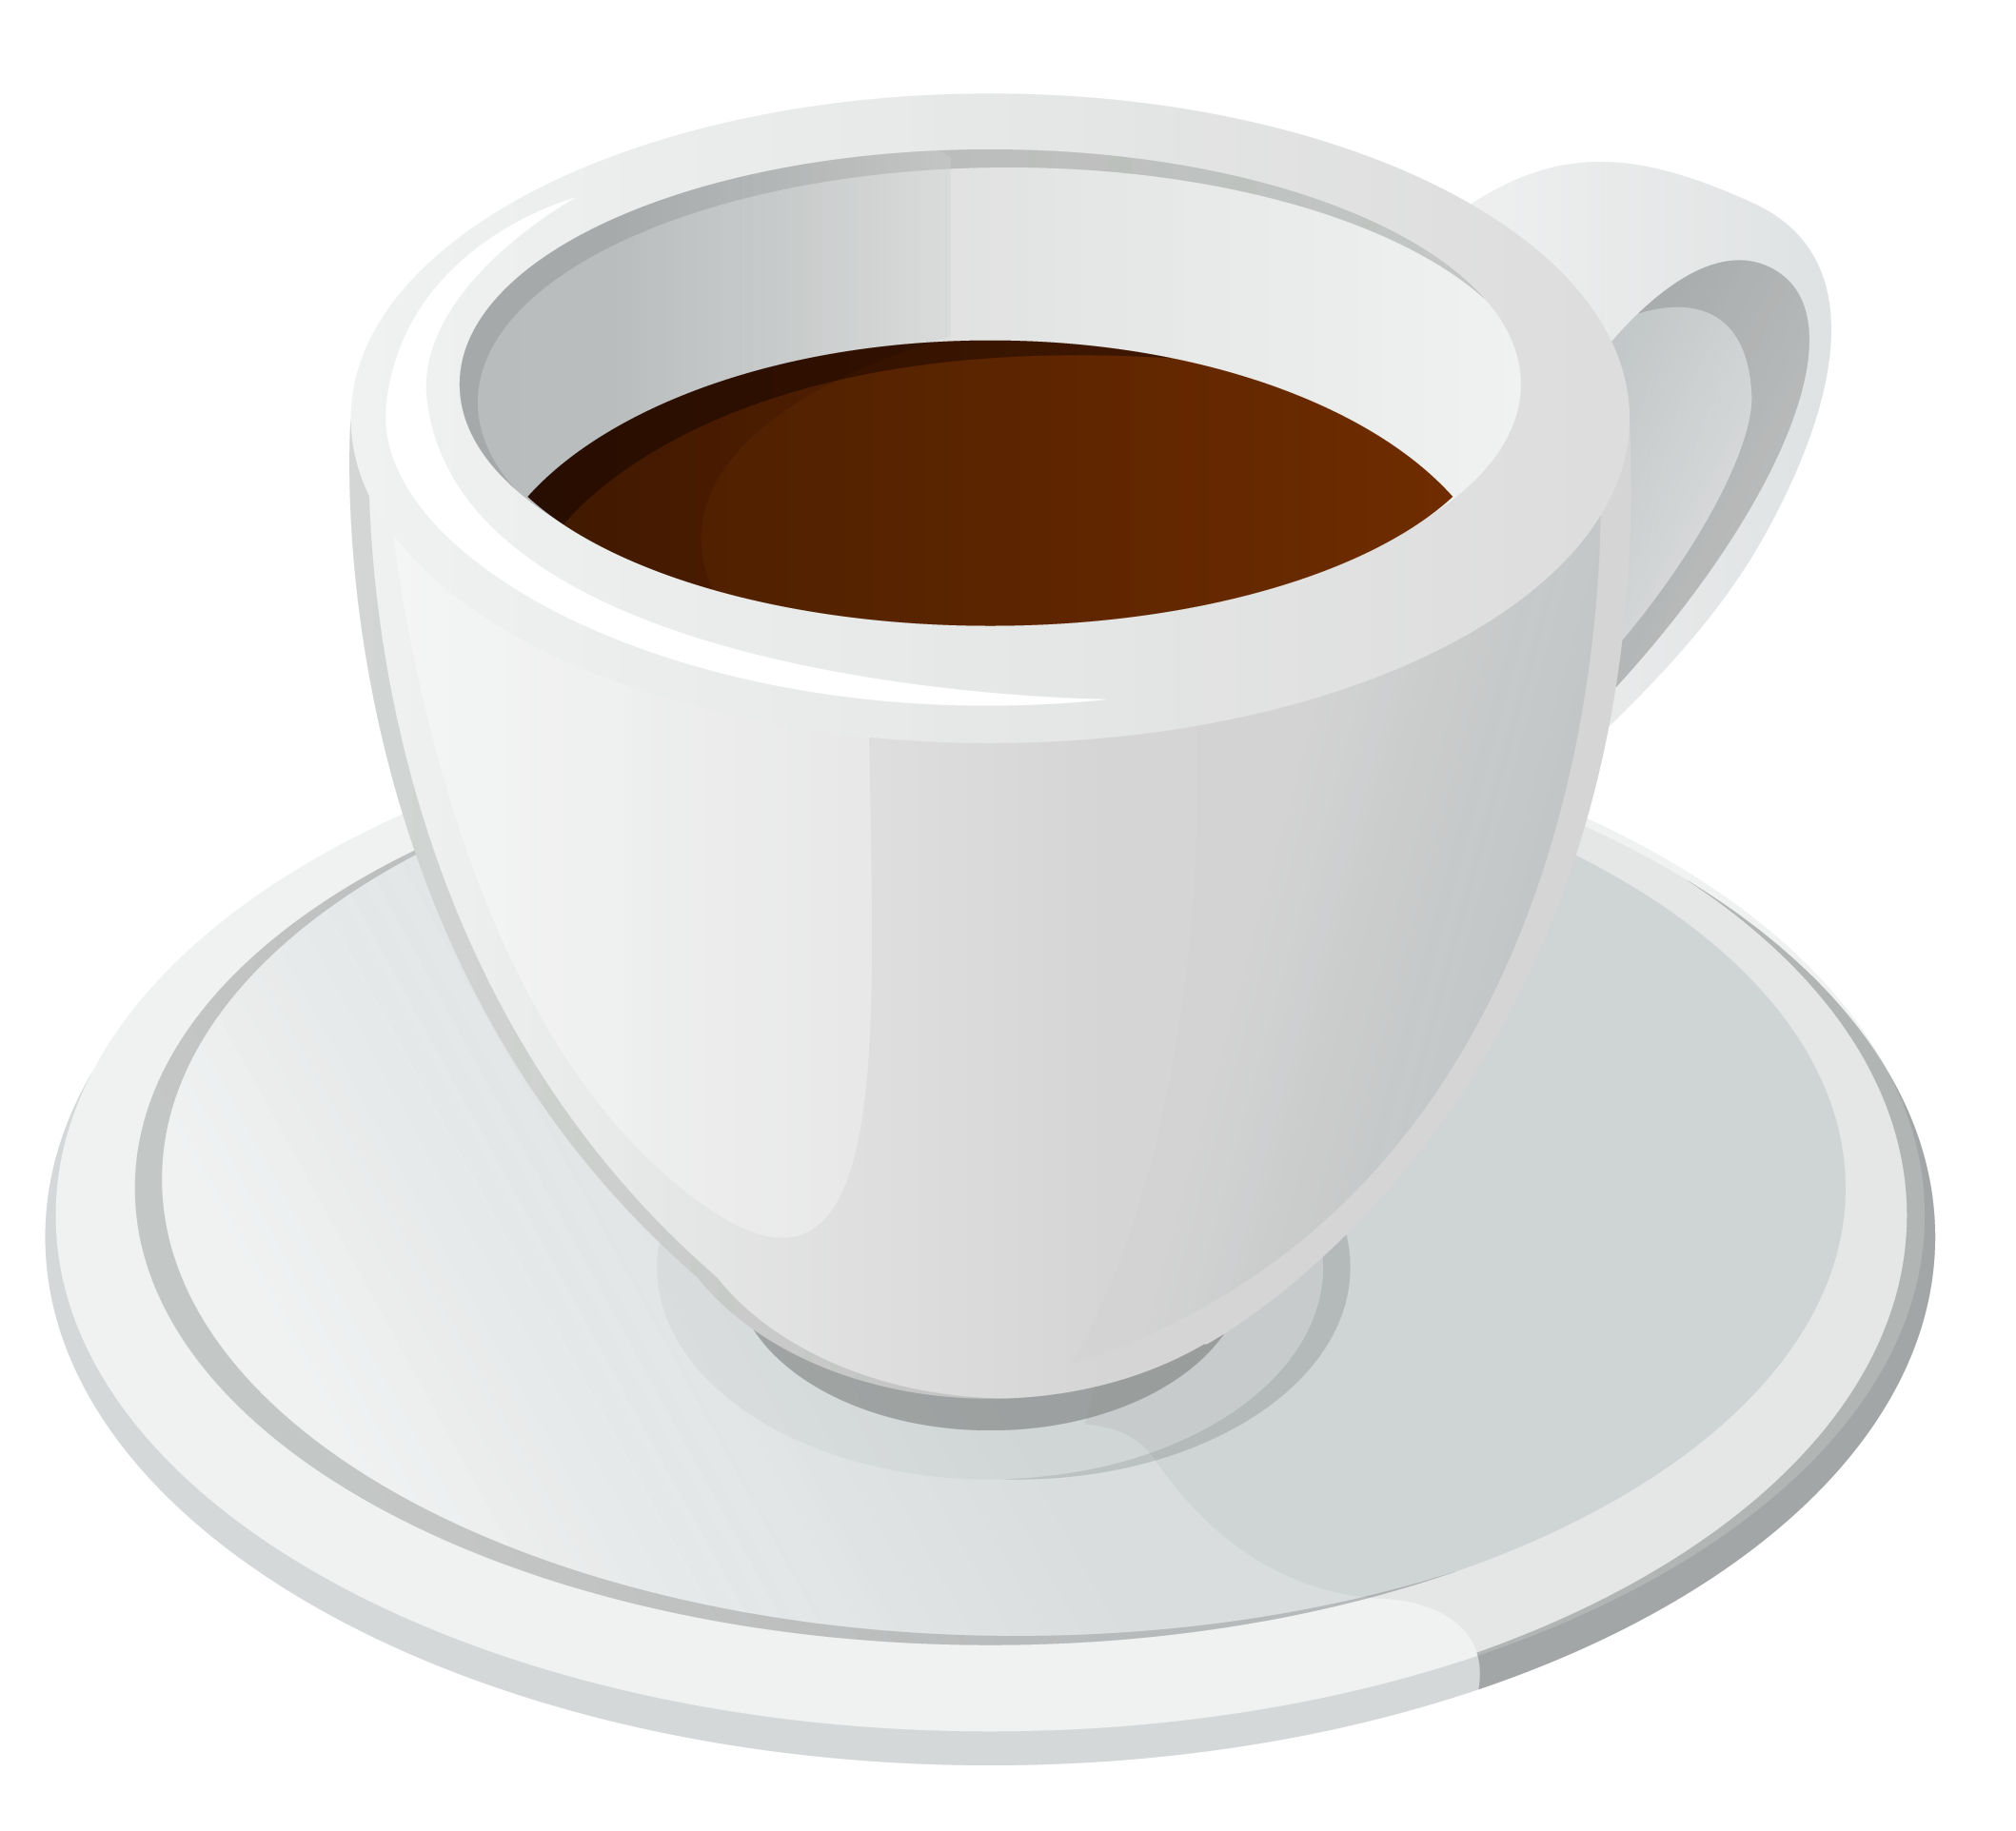 Coffee clipart cup saucer Quality Clipart full High PNG